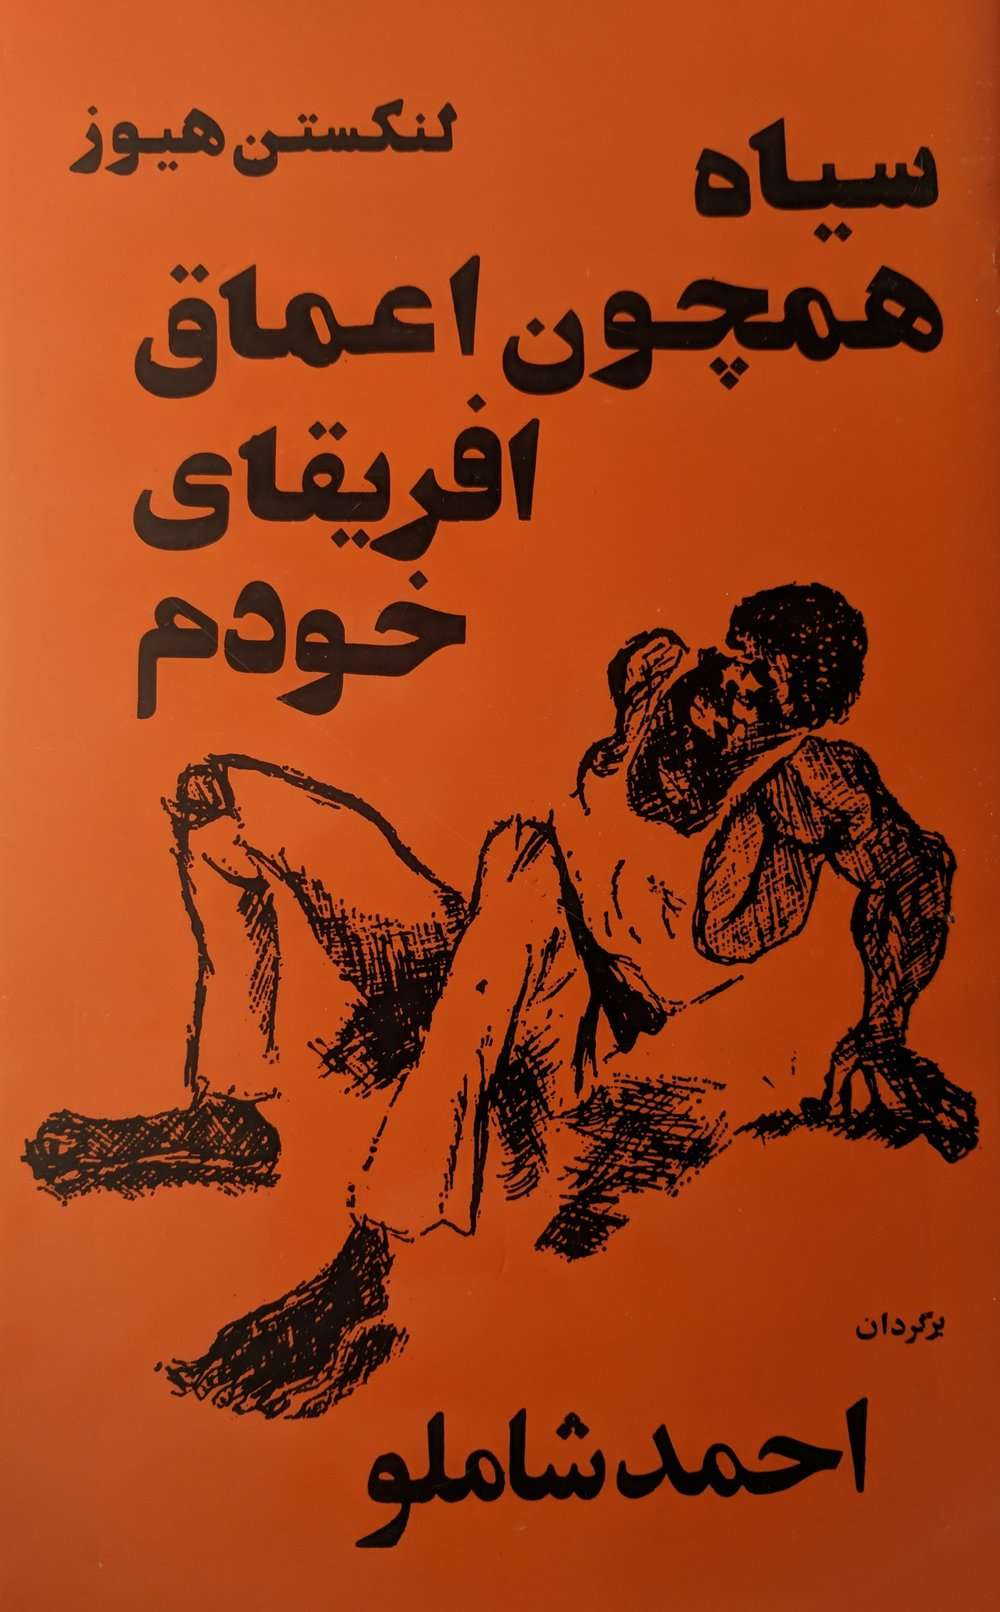 For Langston Hughes's birthday (Feb. 1, 1902), here's the cover of Persian poet Aḥmad Shāmlū's translations of his poetry.